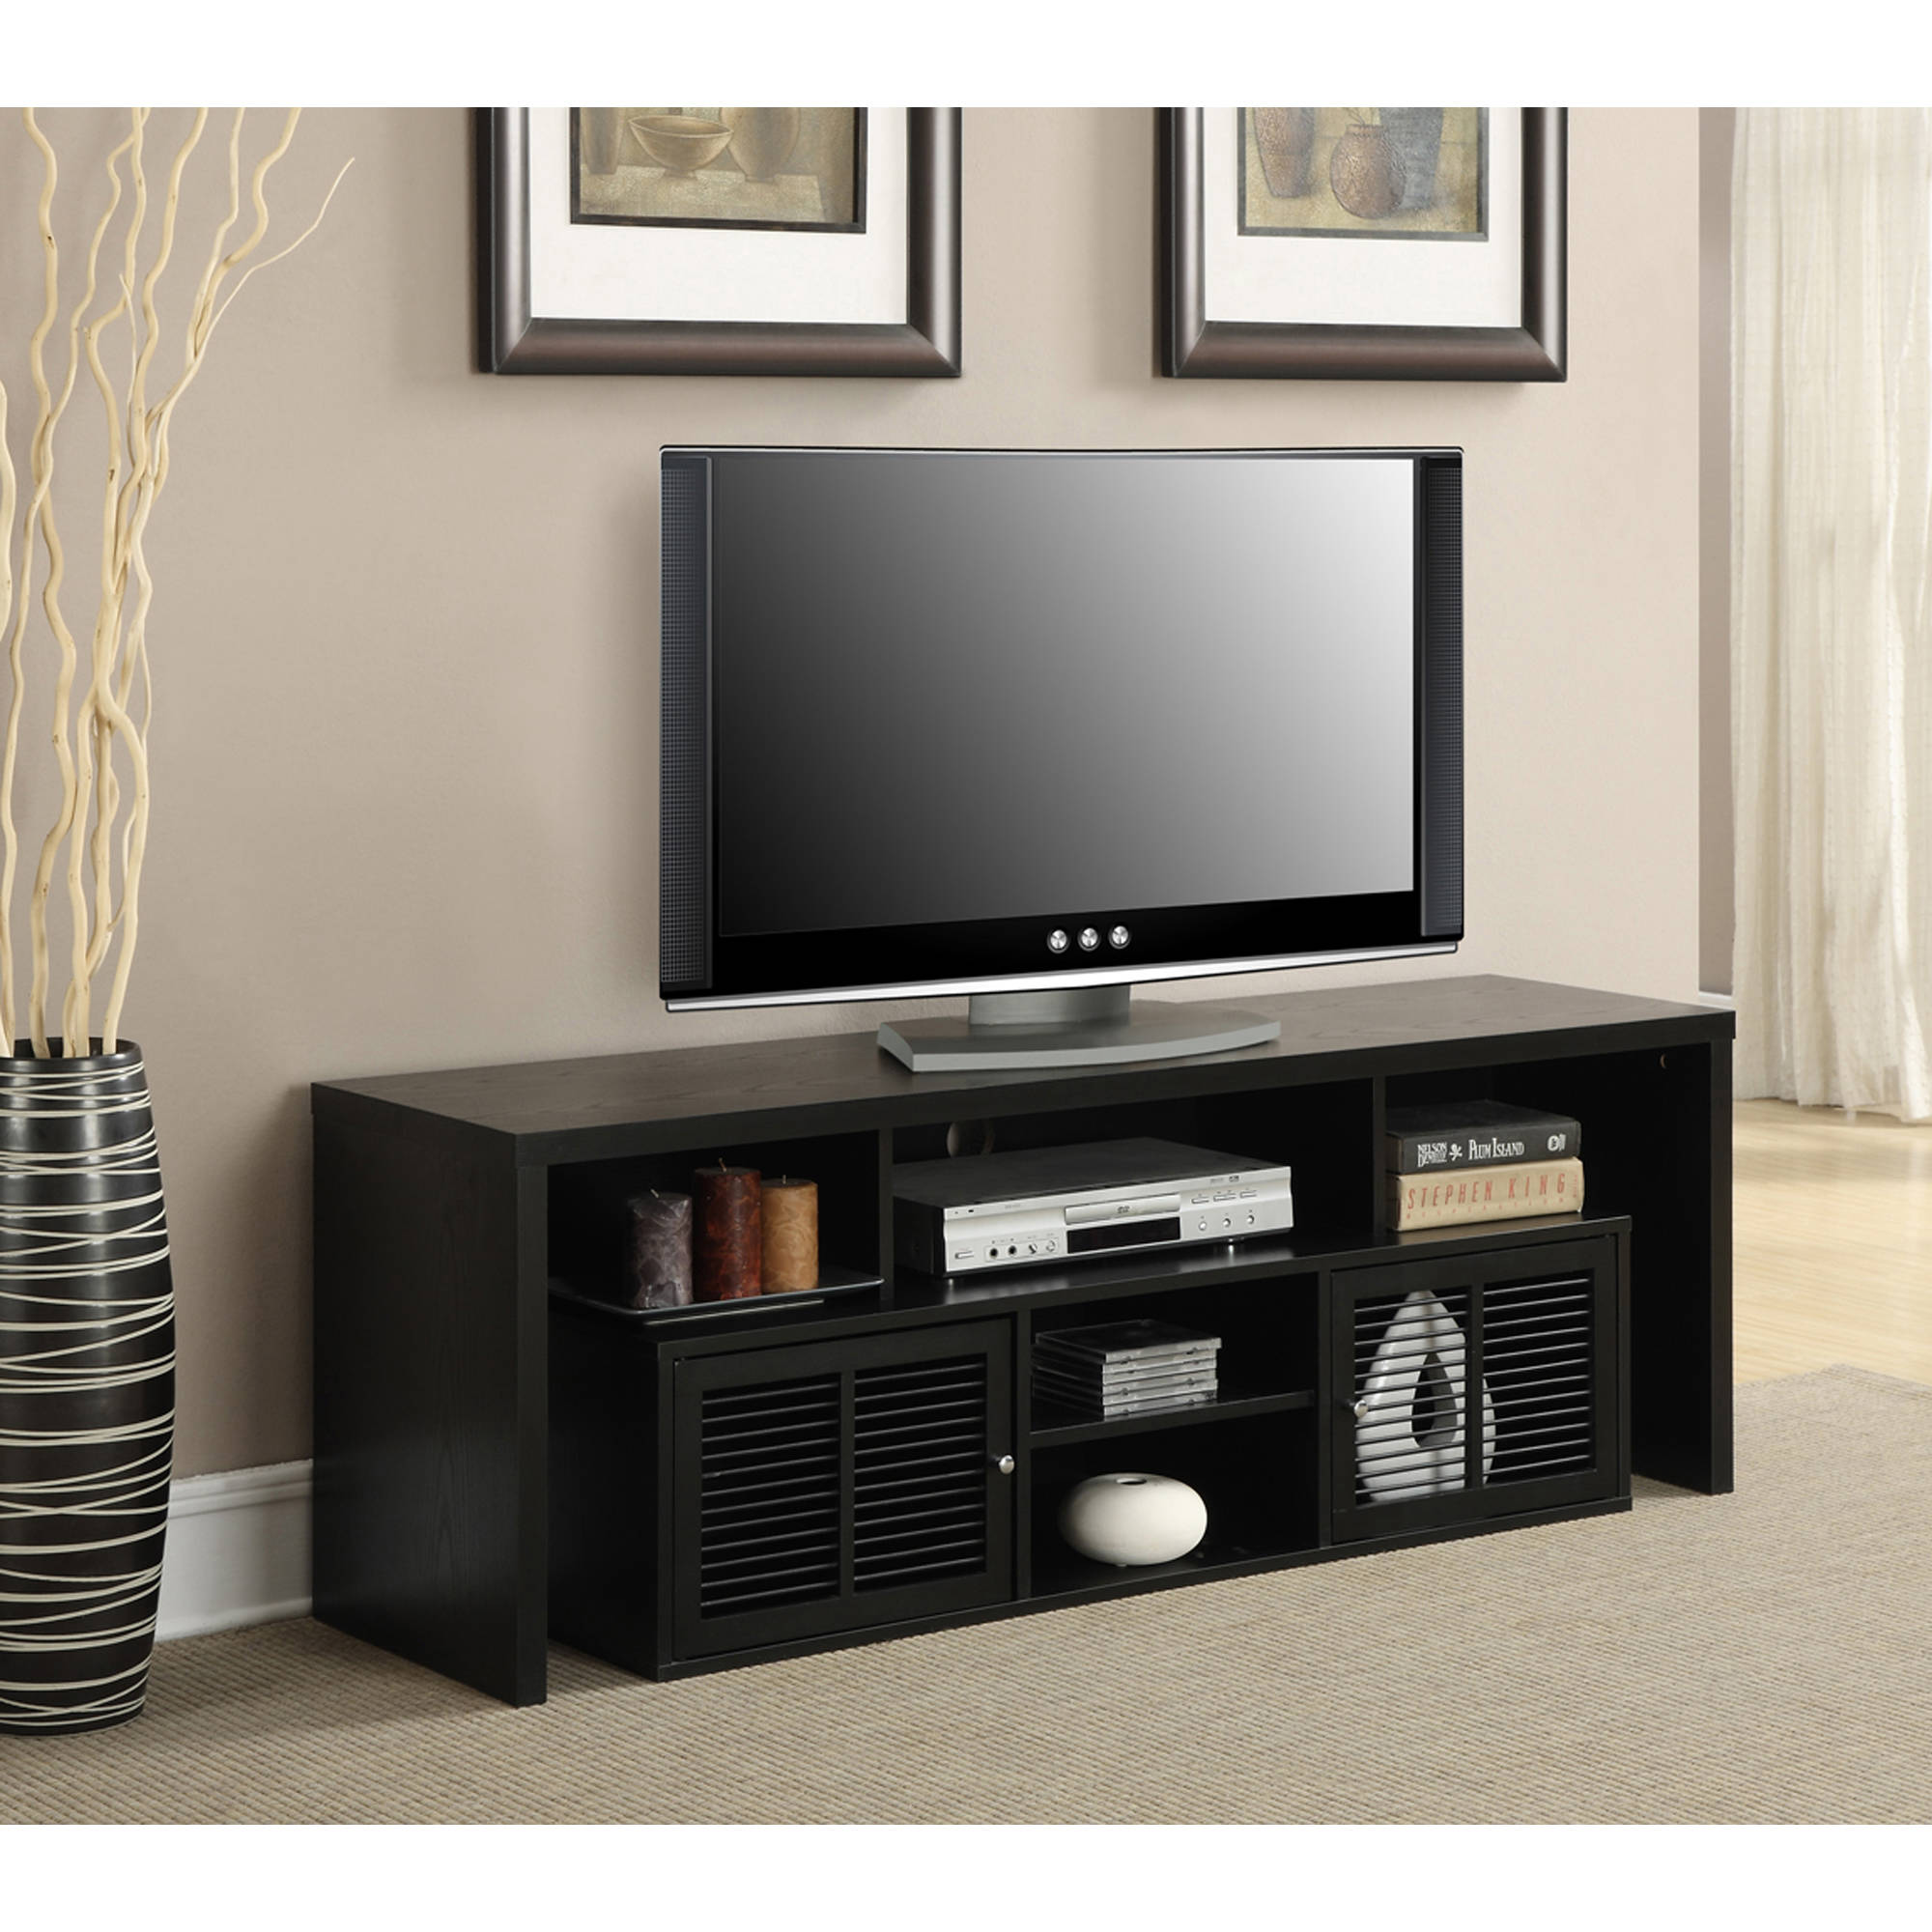 "Convenience Concepts Designs2Go Lexington TV Stand for TVs up to 62"", Multiple Colors"